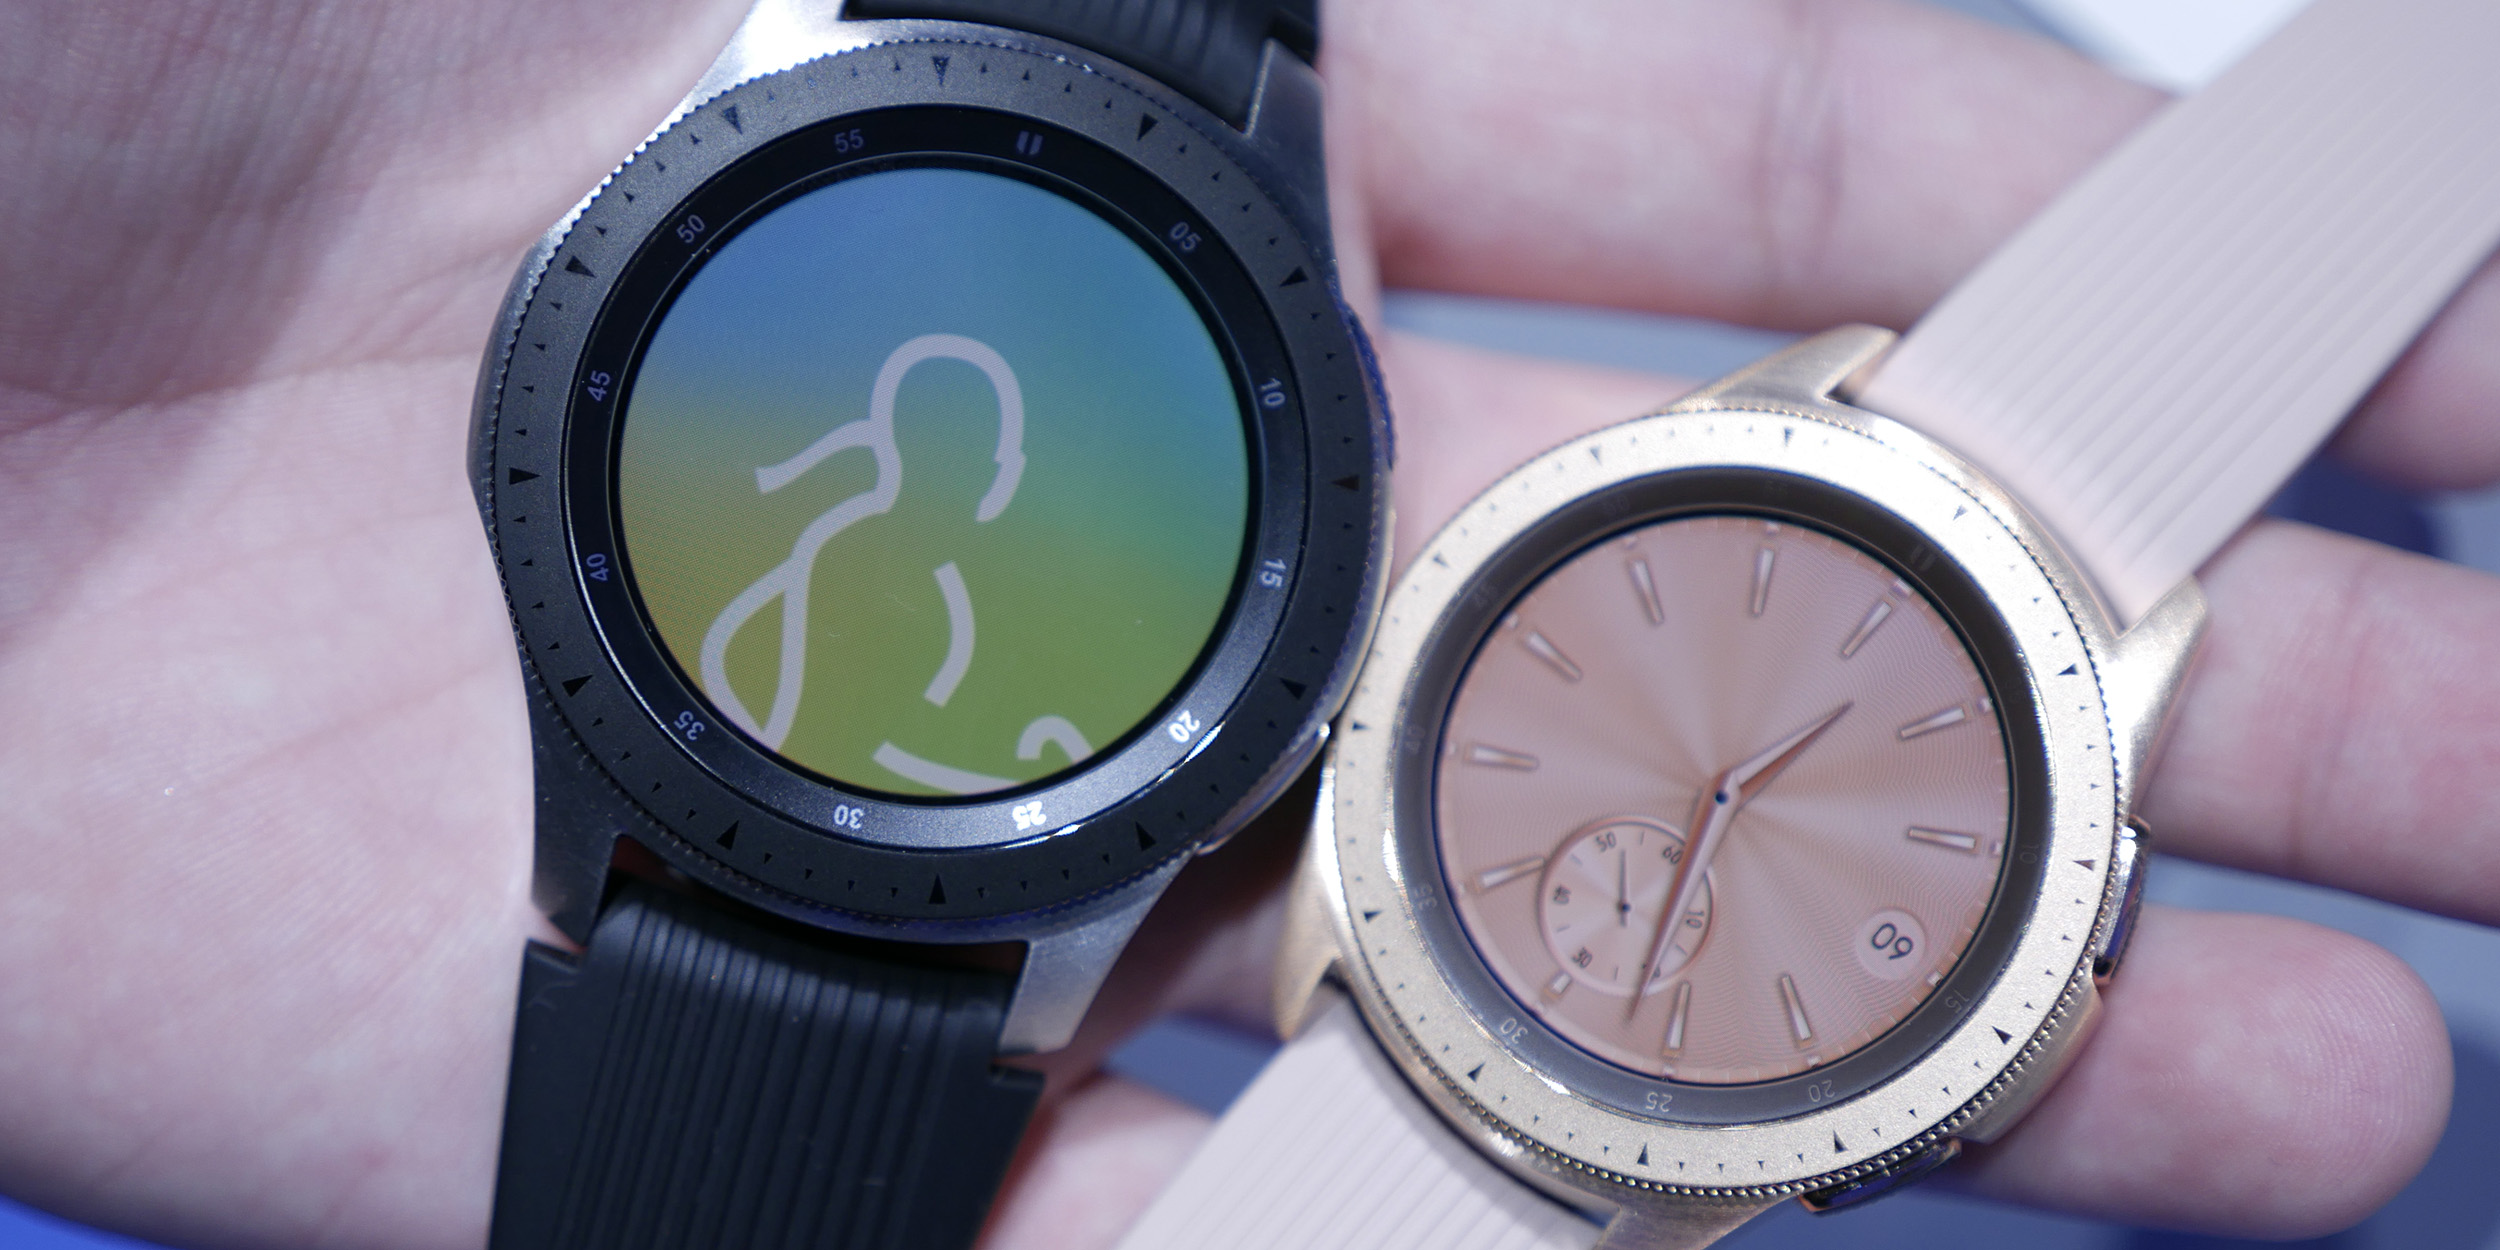 samsung galaxy watch tidbits samsung pay loses mst a new chipset wireless charging